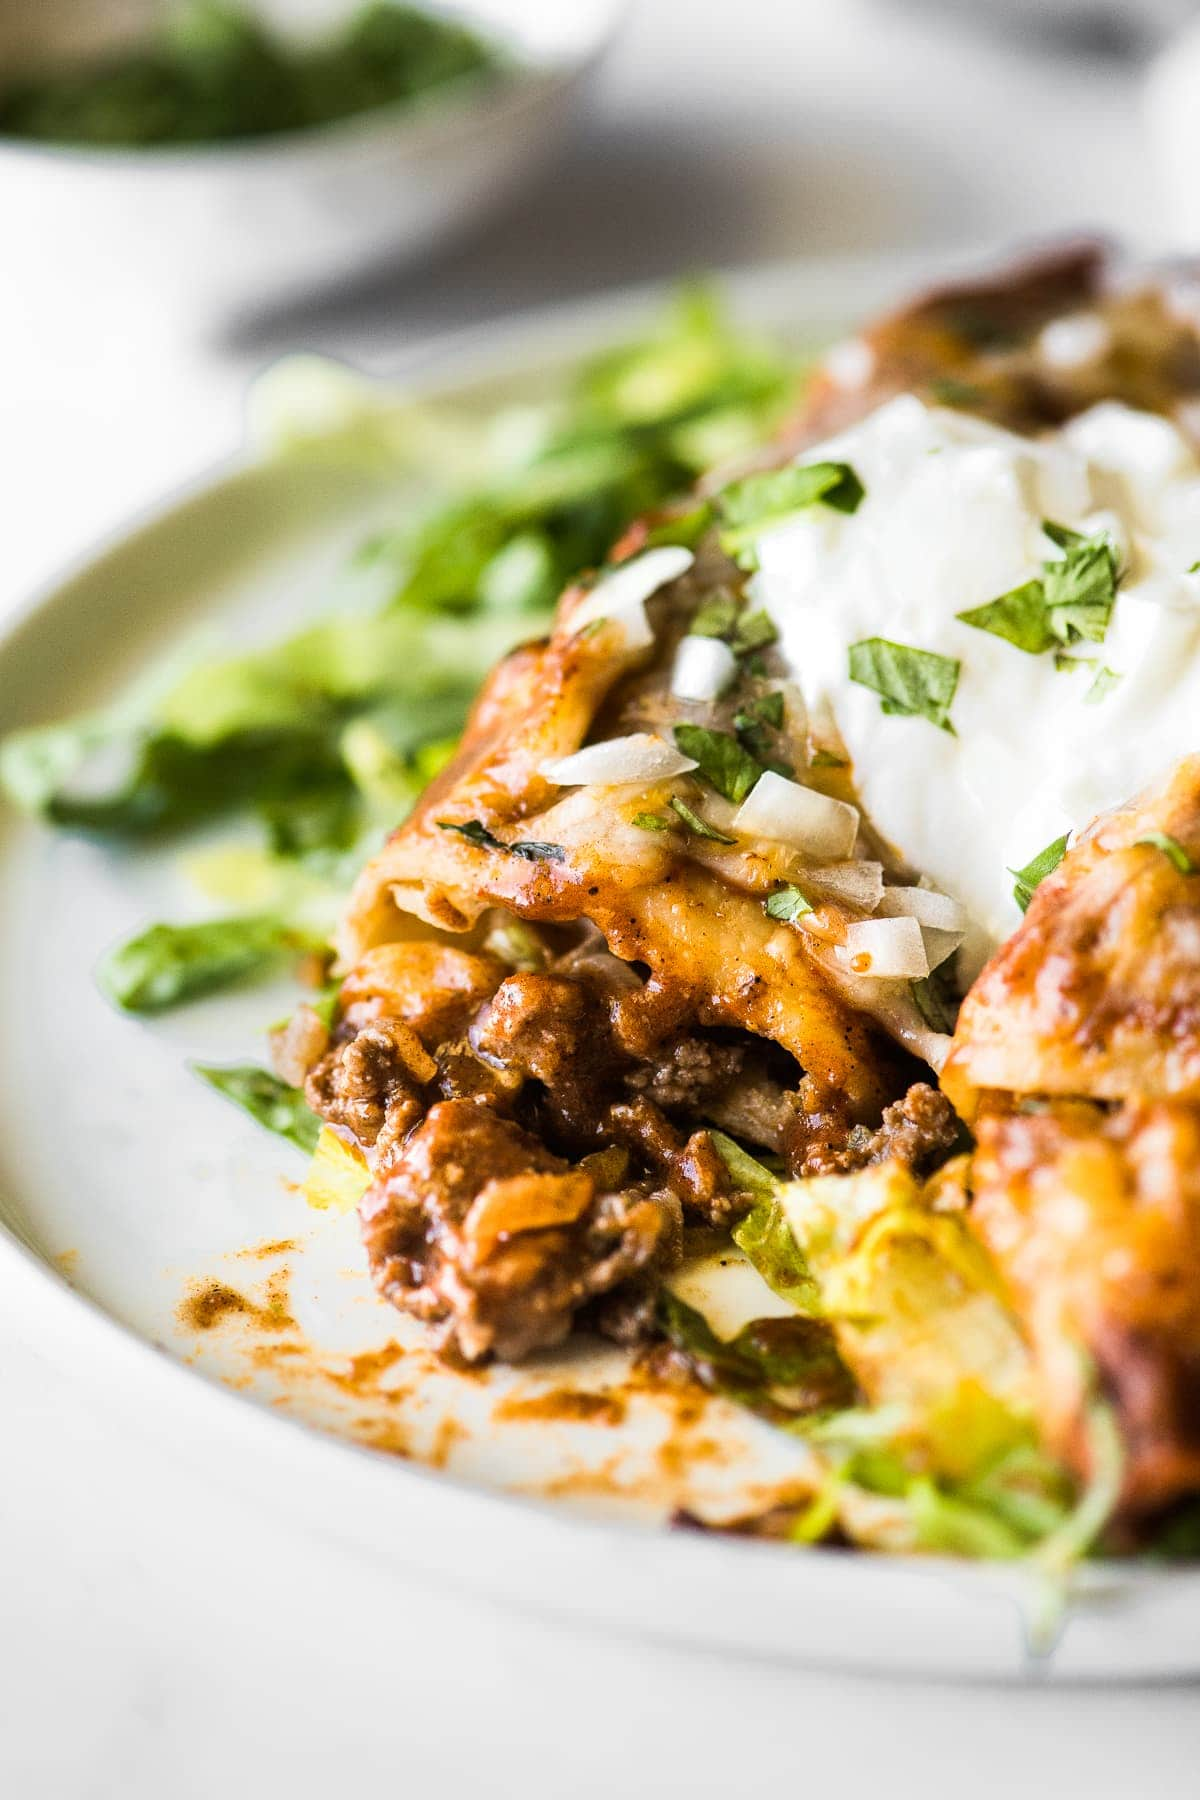 Beef enchiladas topped with sour cream on a bed of shredded lettuce.